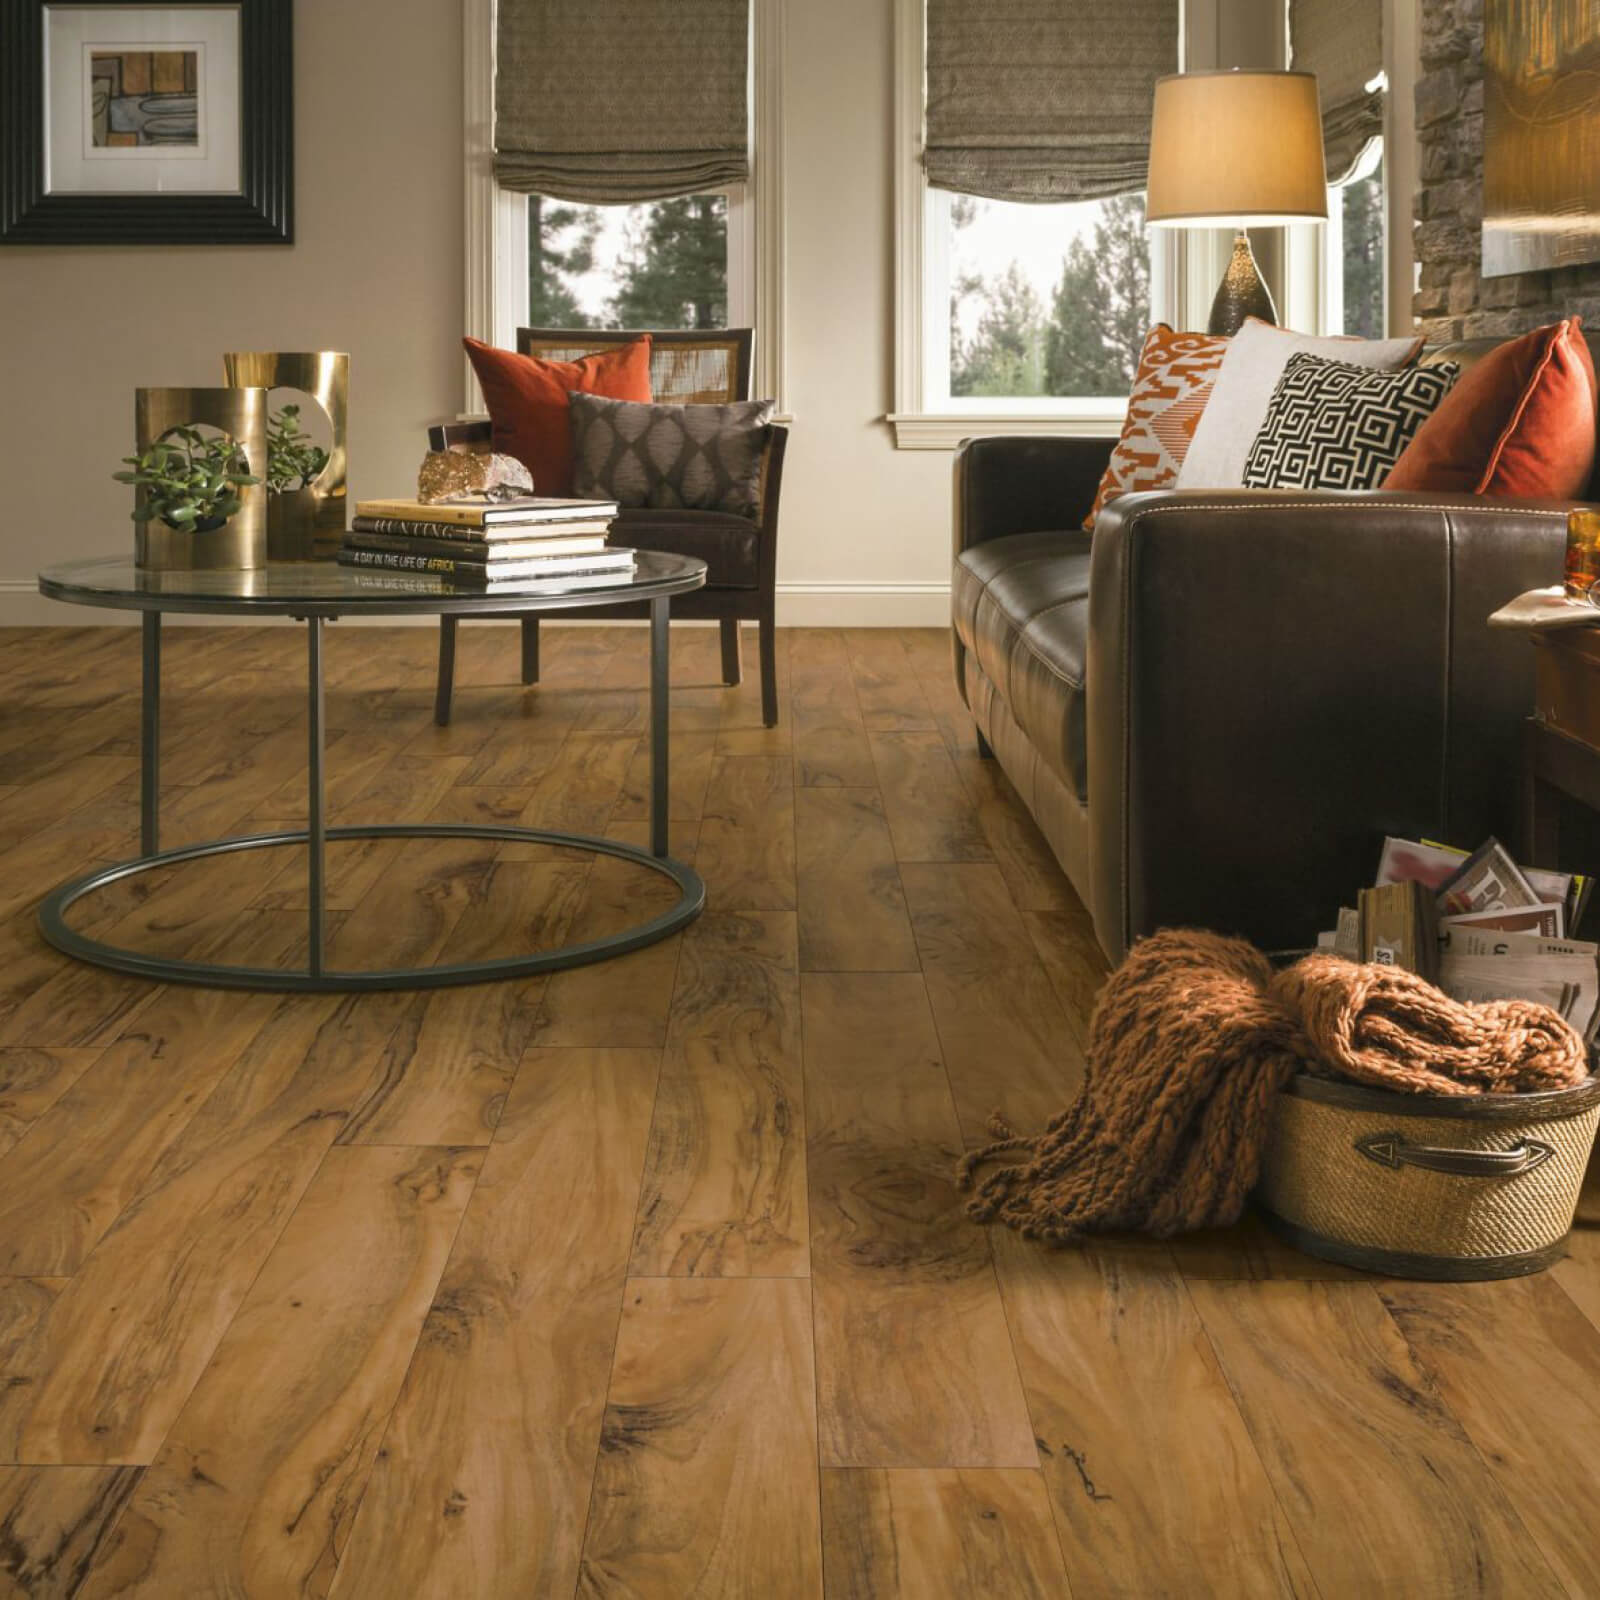 Luxury Vinyl flooring in living room | Flooring Concepts